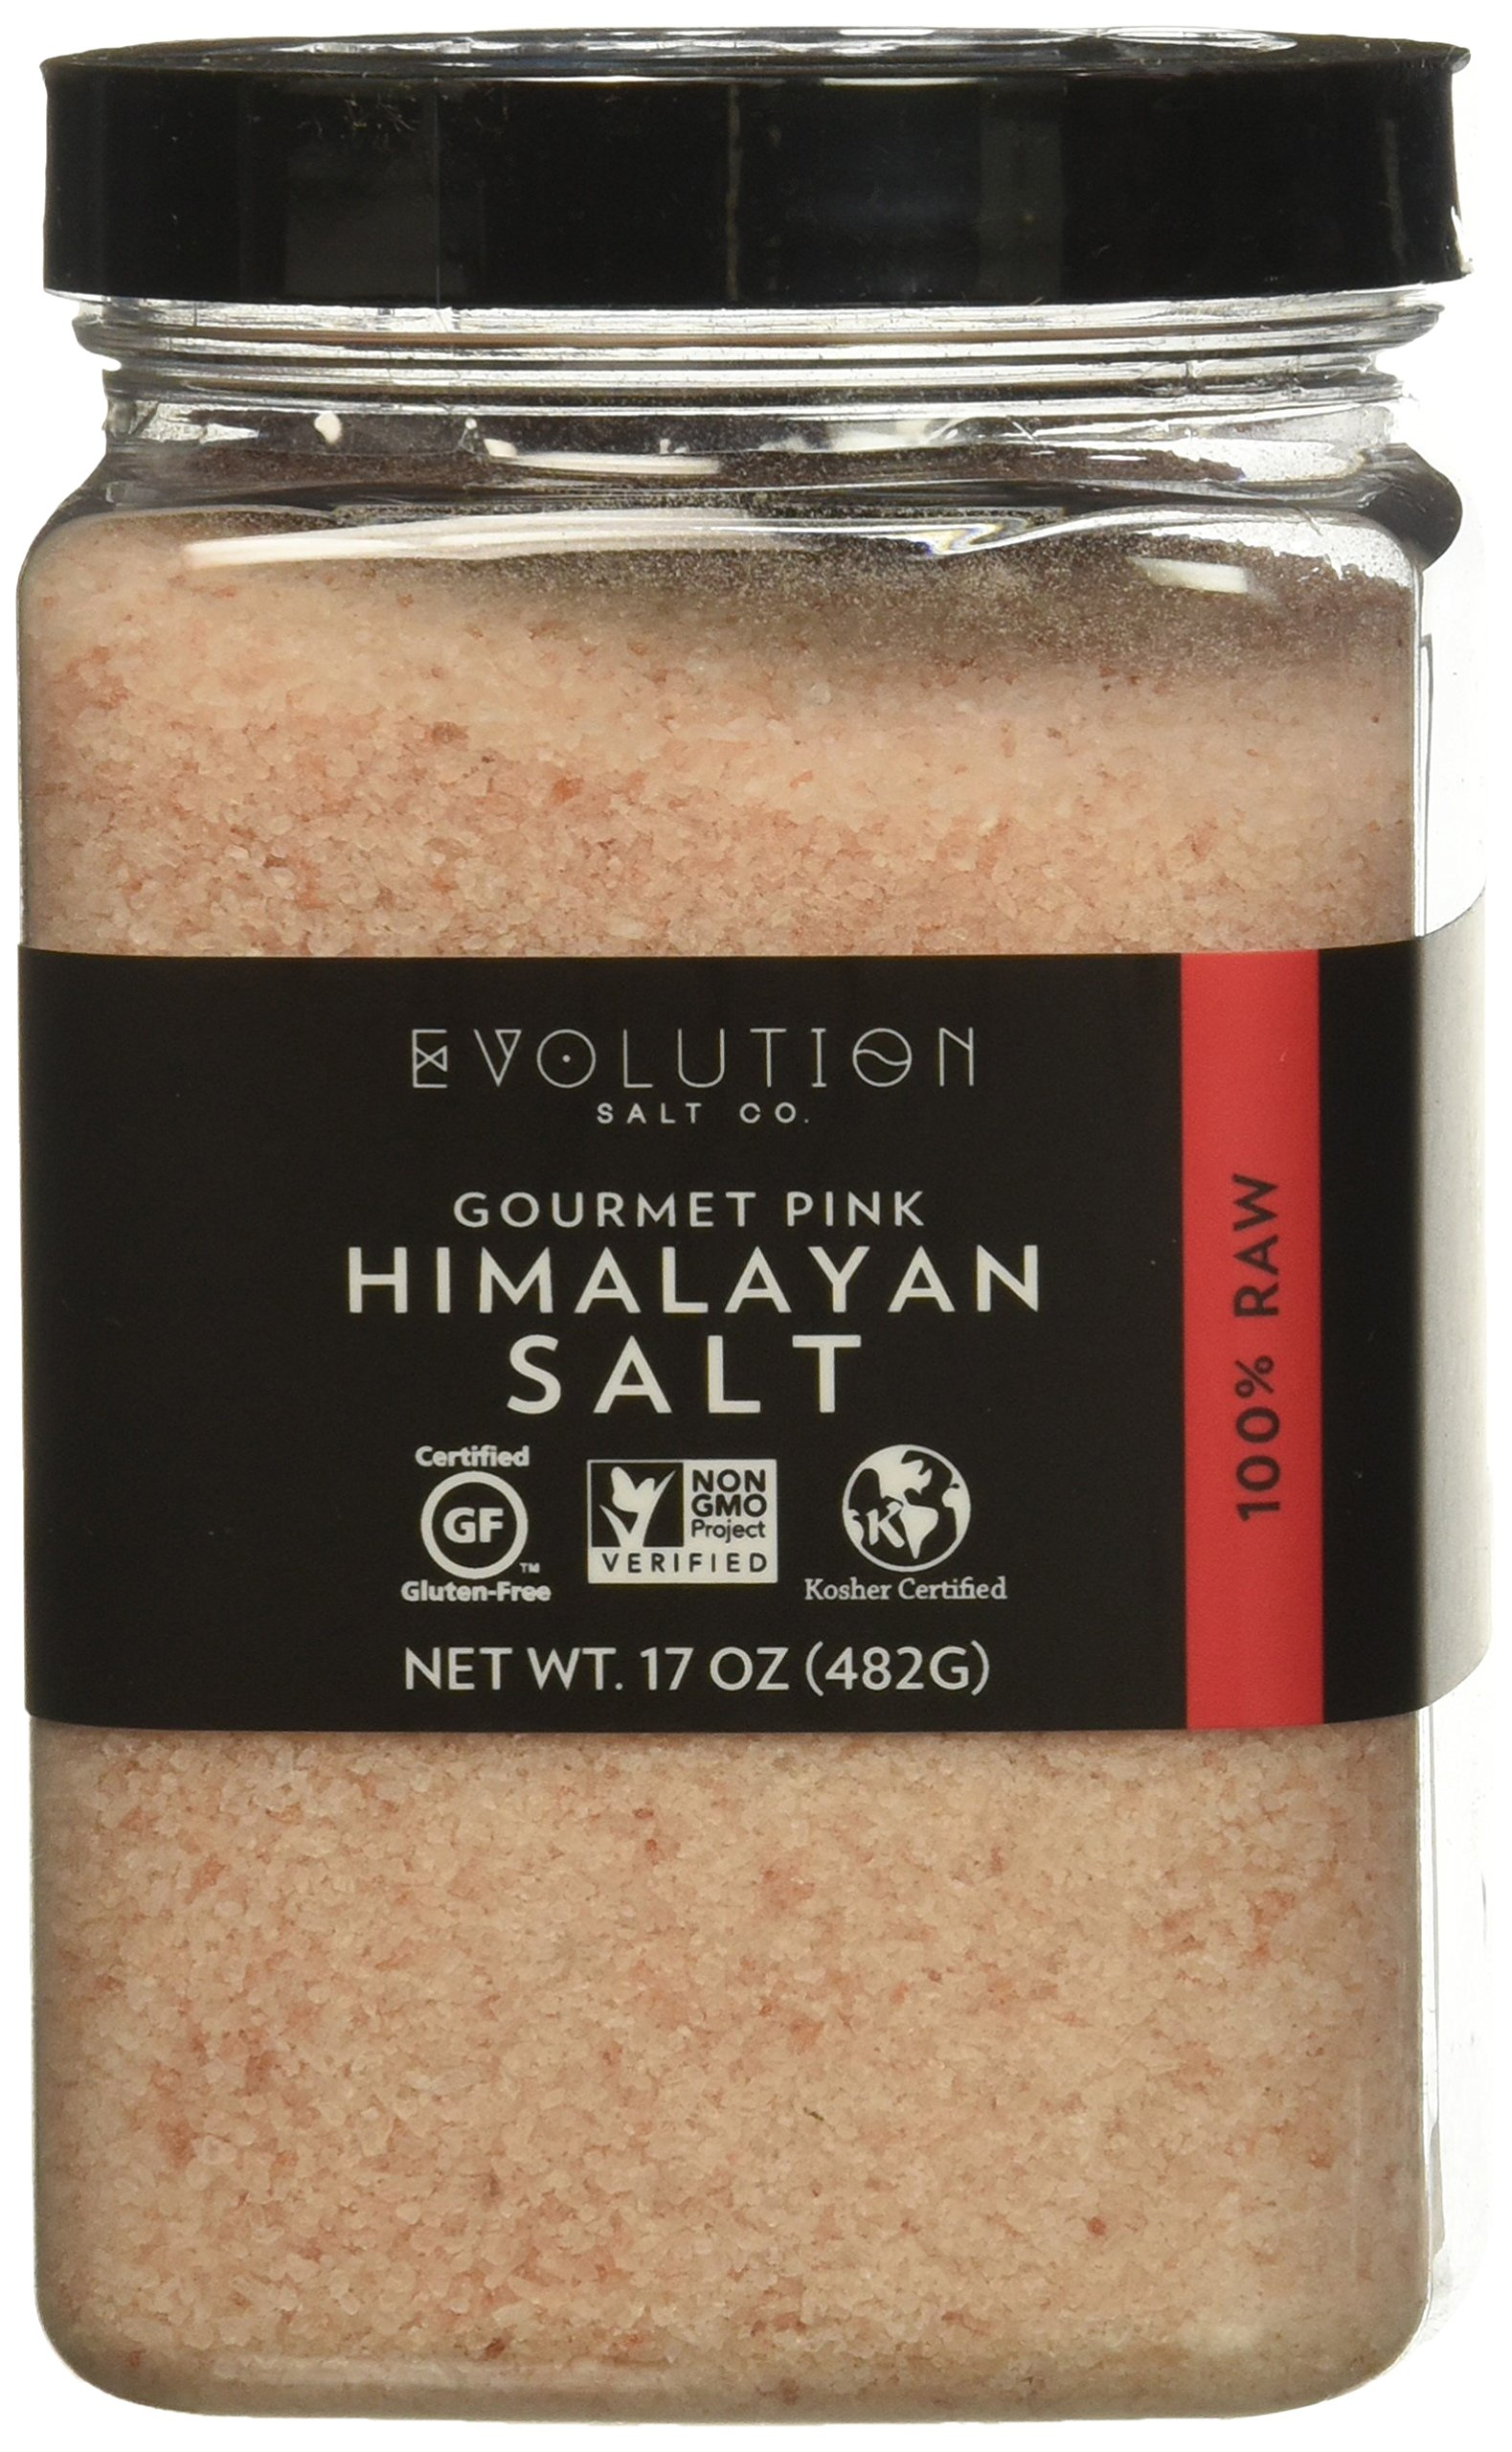 Evoltion Salt Co Gourmet Pink Himalayan Salt, Fine Grind, 16 Ounce (Pack of 6)